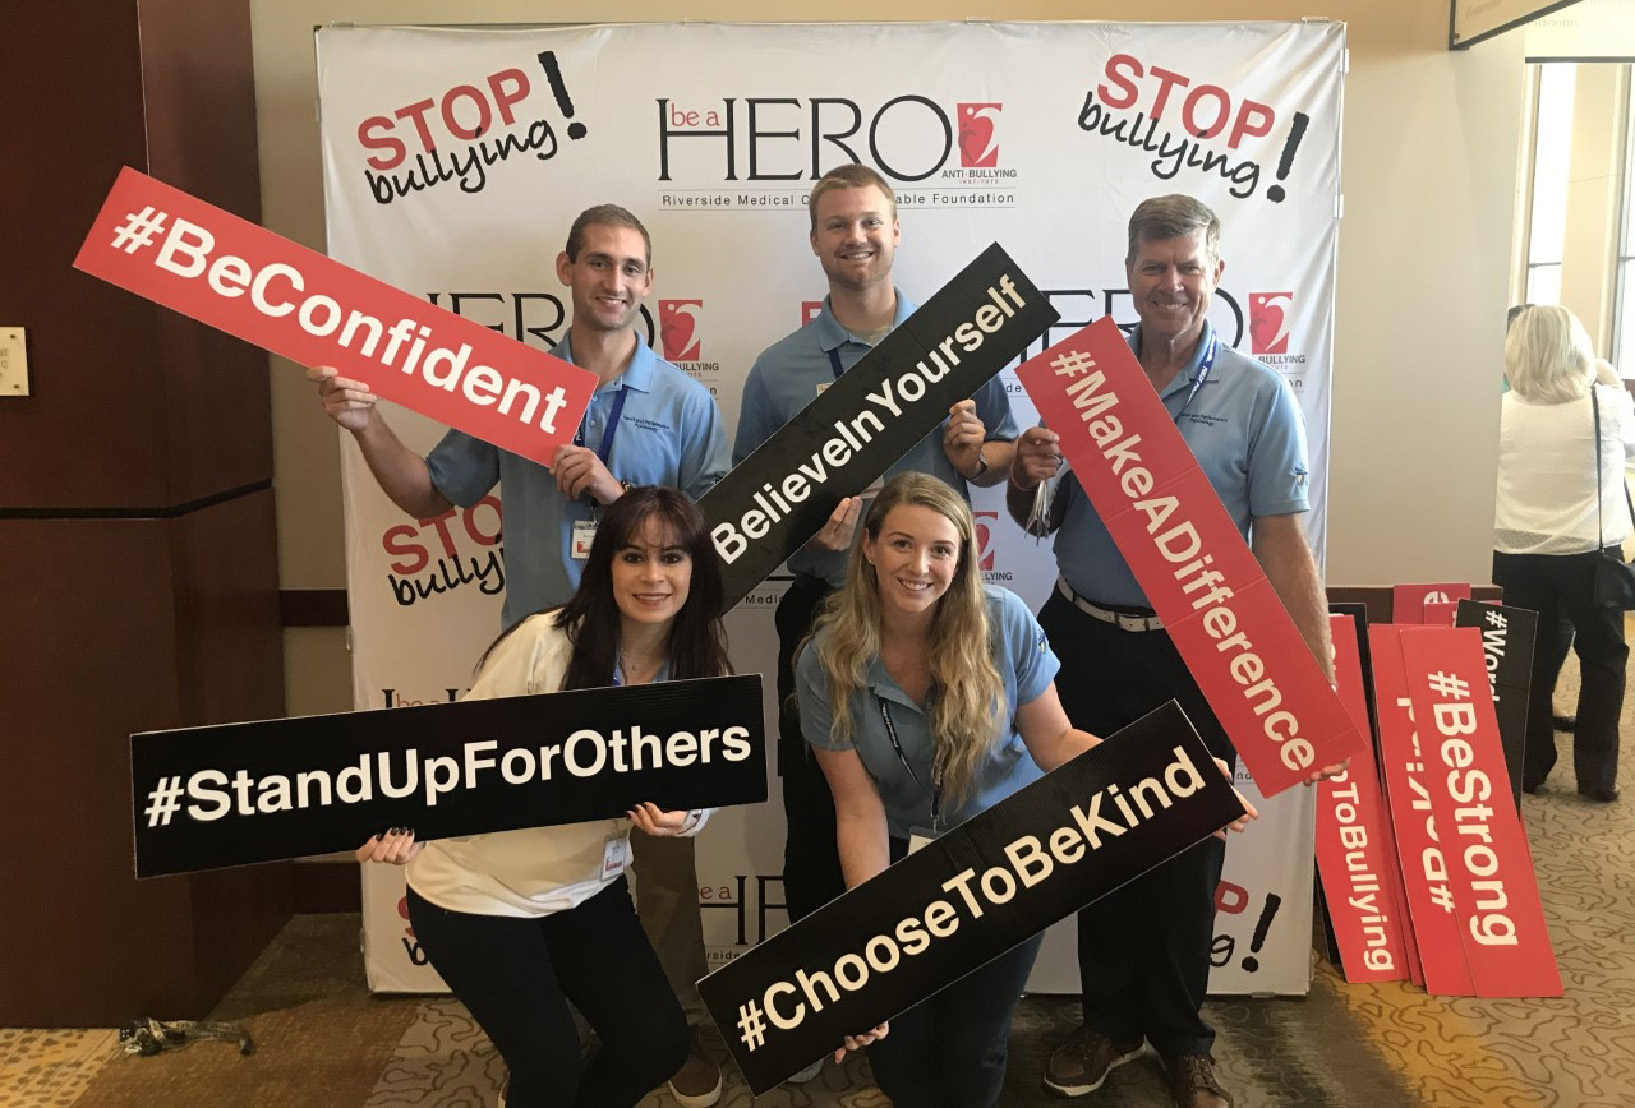 On July 1, 2019, the HERO program received good news. It had secured a $20,000 Kaiser Foundation Hospital grant to help continue its anti-bullying program for high school students in Riverside.